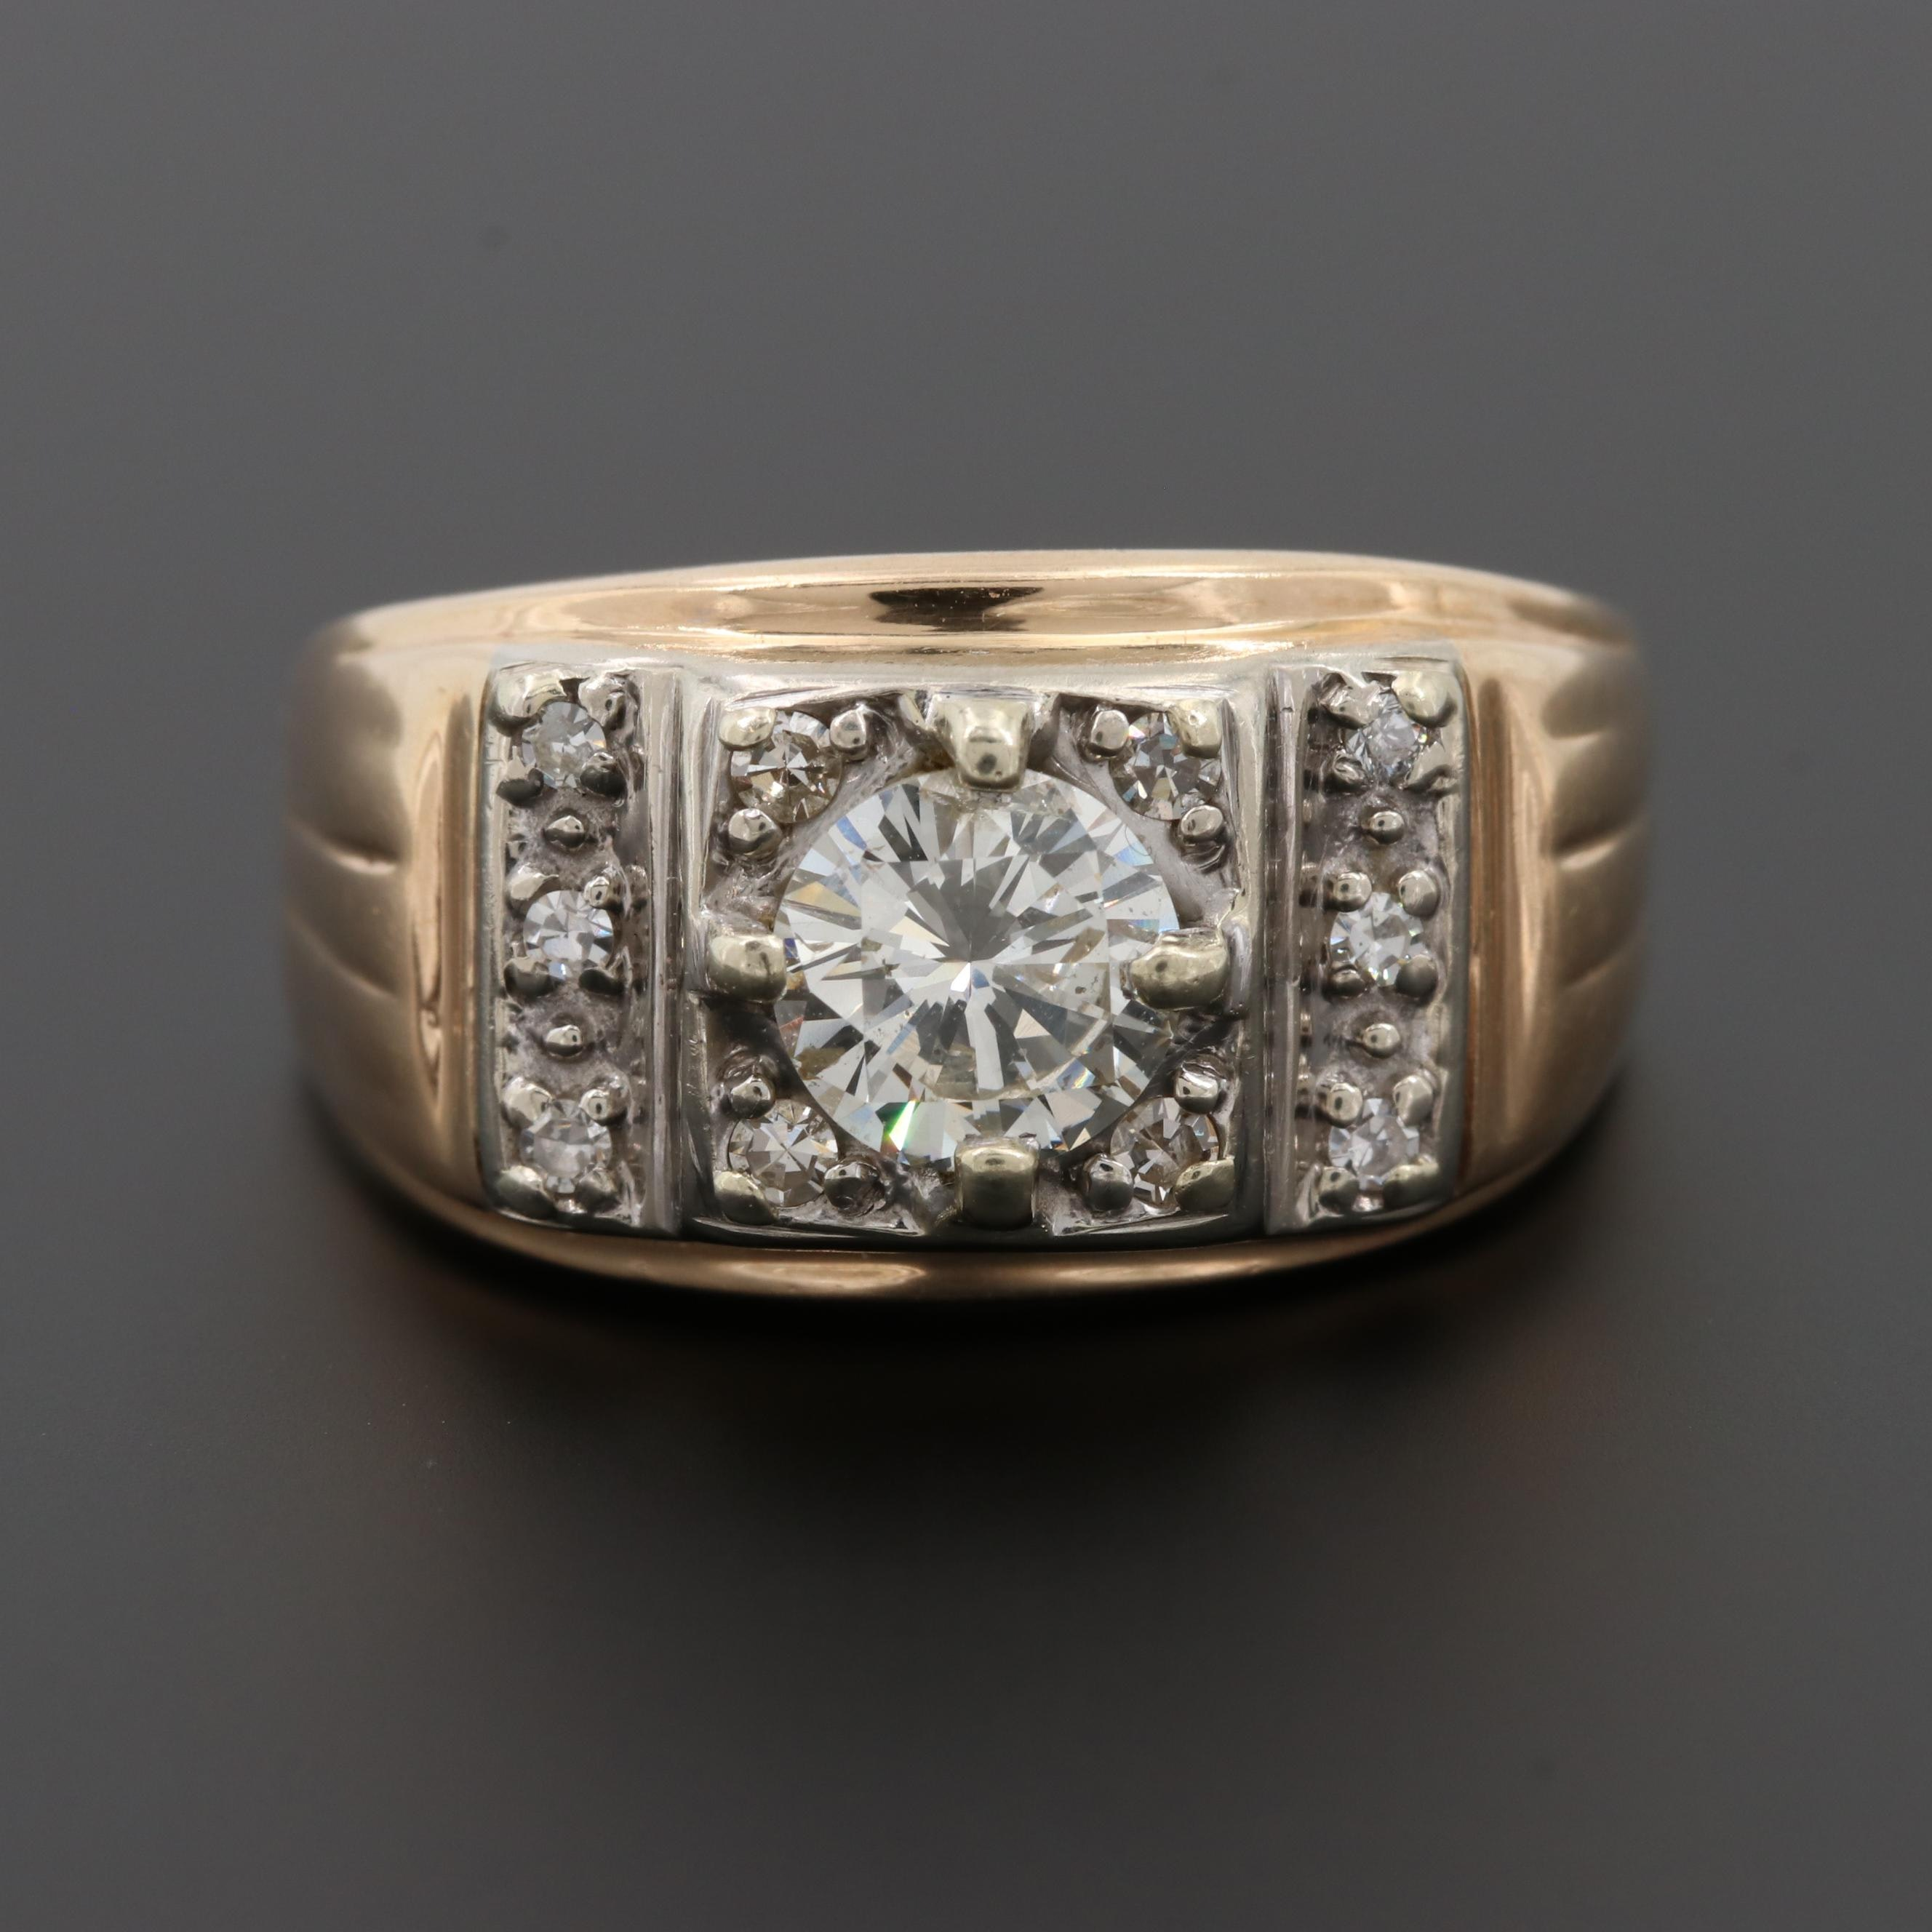 14K Yellow Gold 1.14 CTW Diamond Ring with White Gold Accents